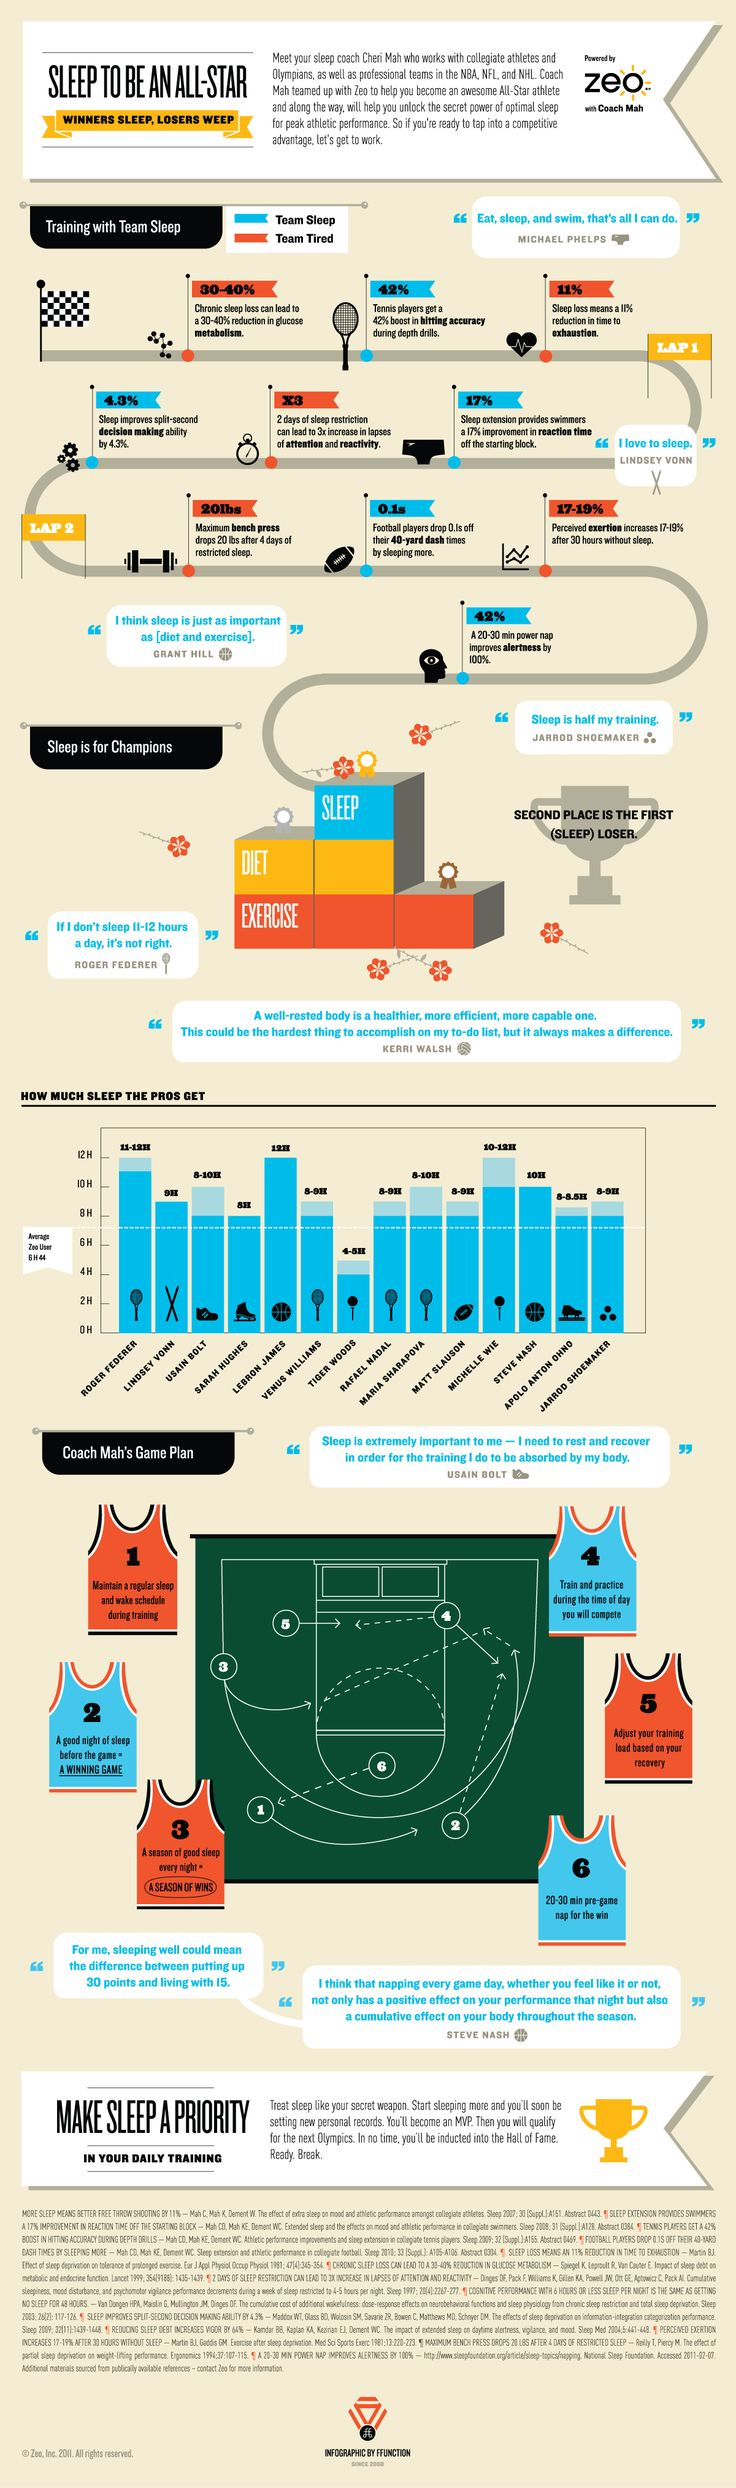 Infographic - Why athletes should make sleep a priority in their daily training - Fatigue Science